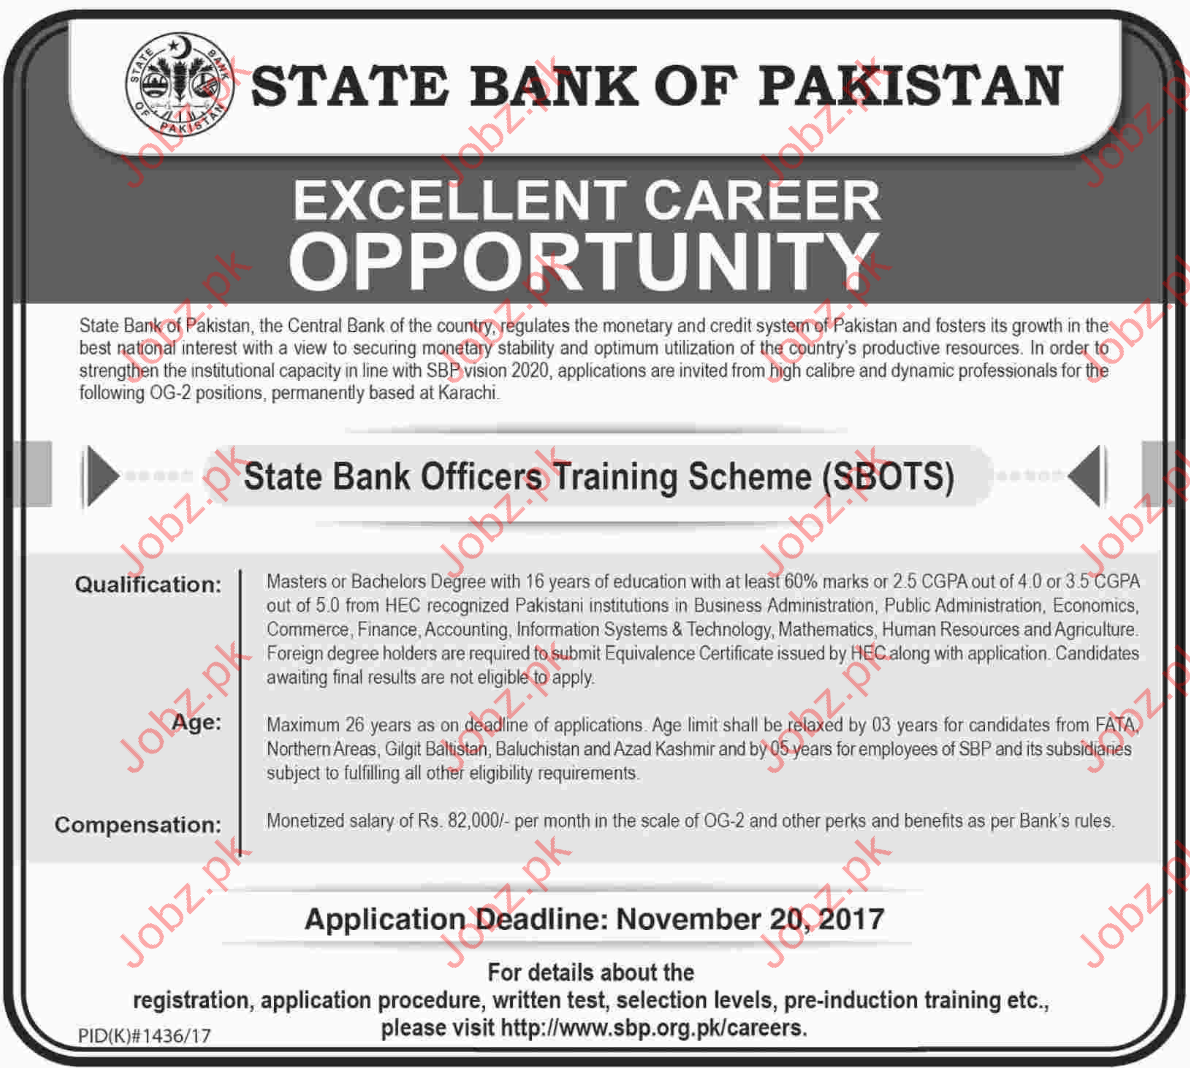 State Bank of Pakistan Career Opportunities